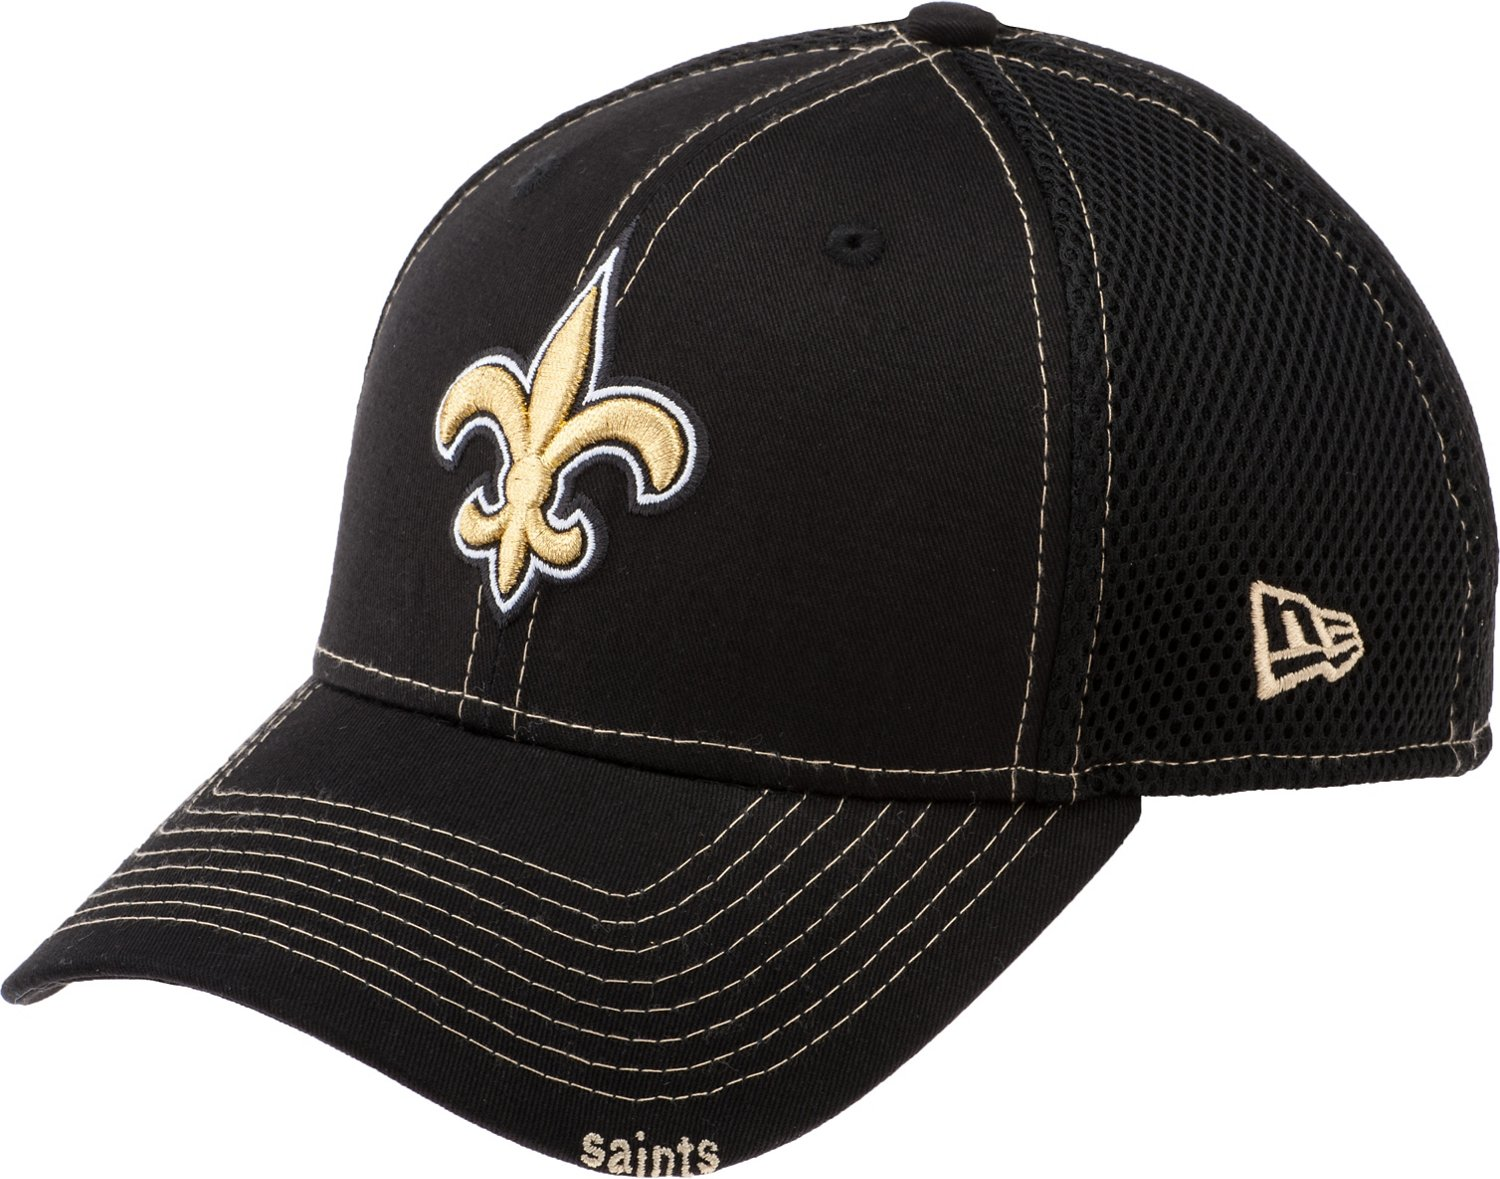 b0fe0c32 Display product reviews for New Era Men's New Orleans Saints 39THIRTY Neo  Cap